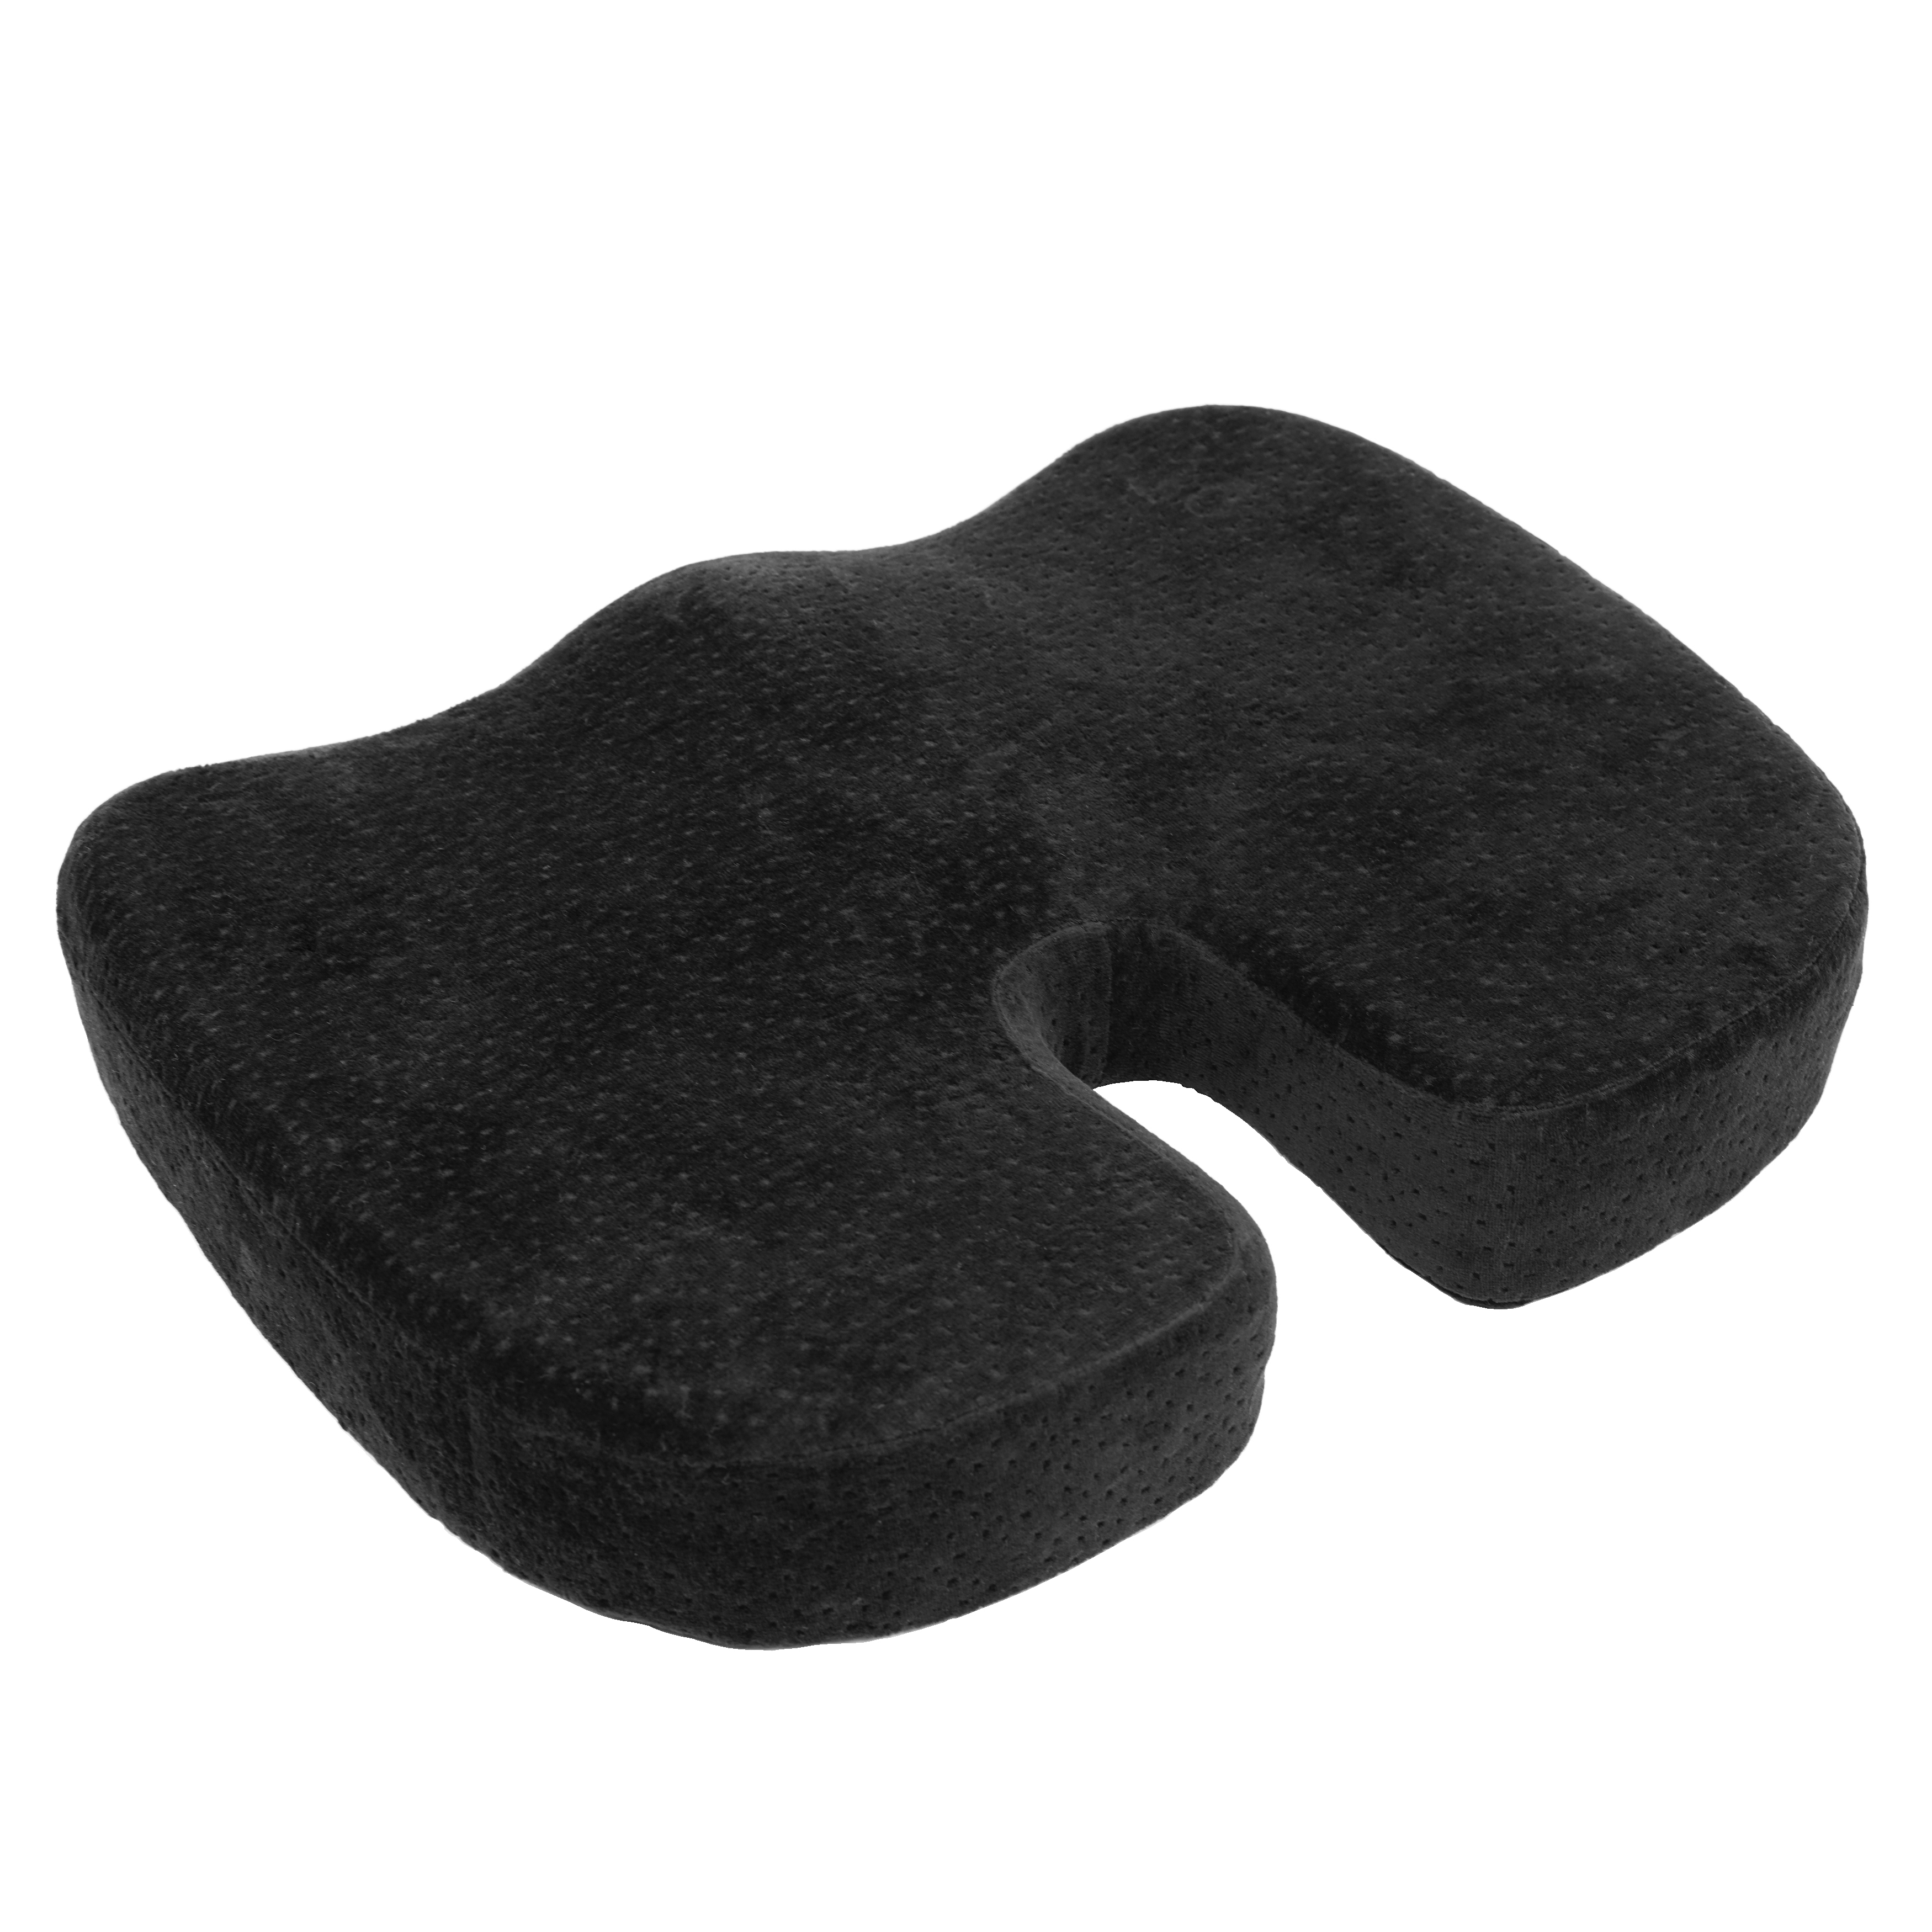 AURORA Black Memory Foam Coccyx Seat Cushion Orthopedically designed for Back, Tailbone and Sciatica Pain Relief; Promotes proper posture; Washable Cover